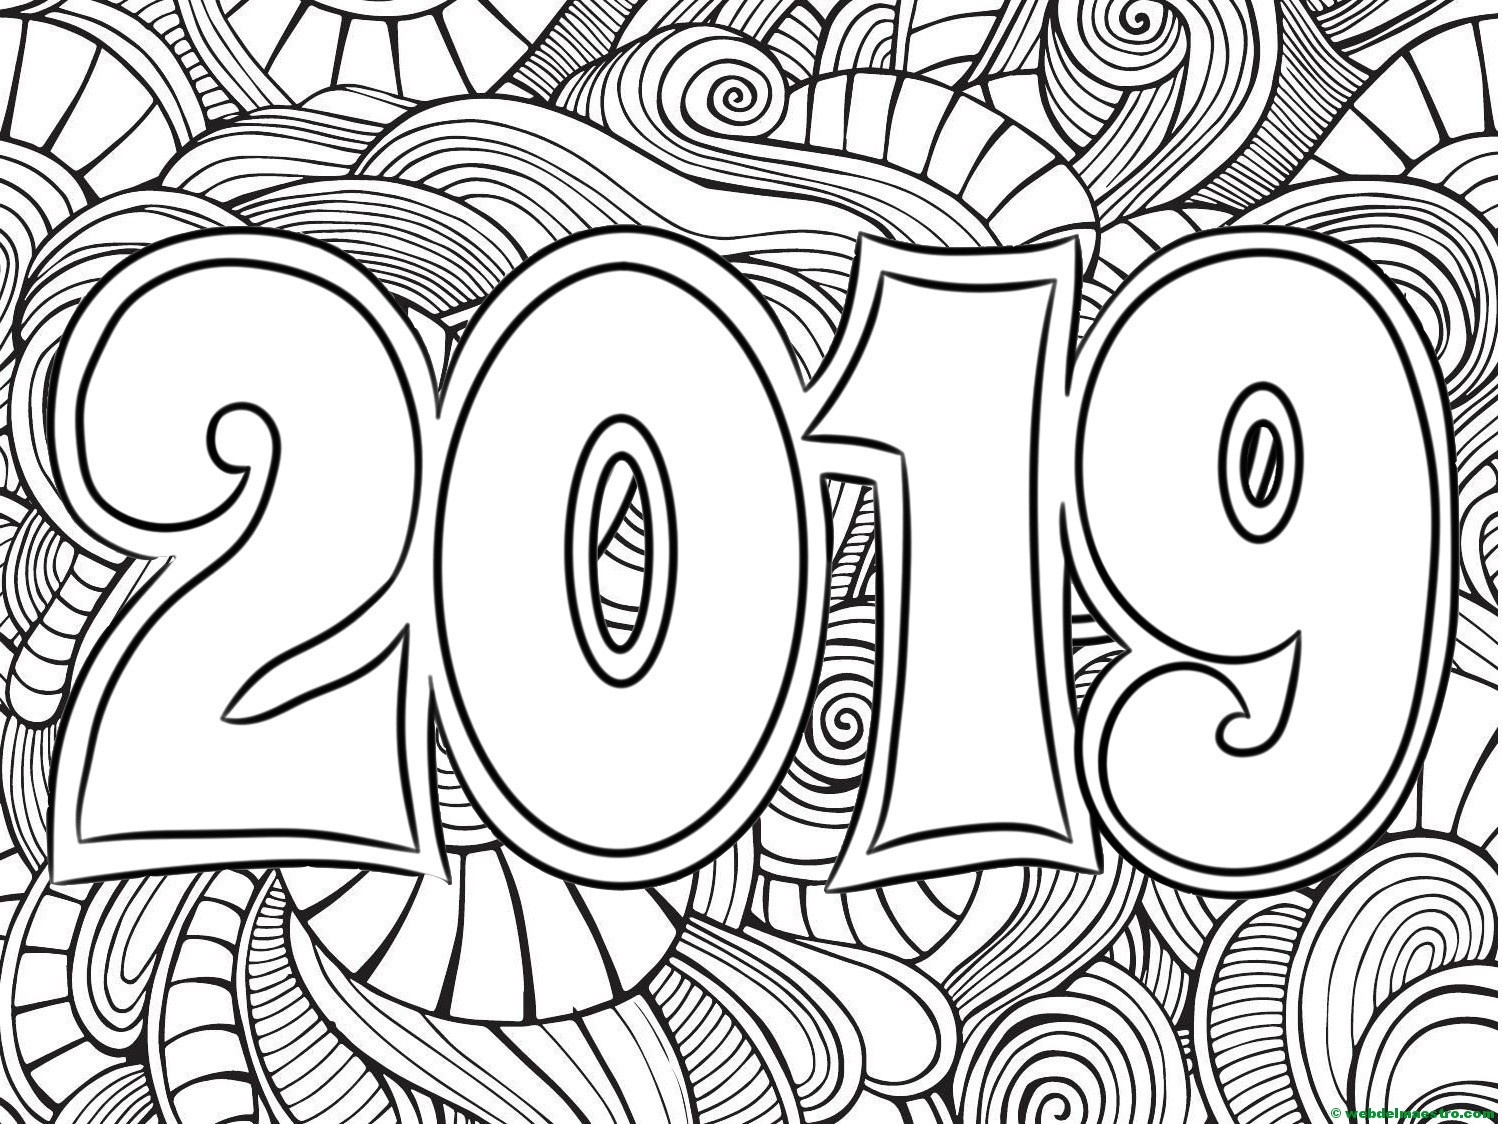 2019 Coloring Pages For Kids  Dibujos para colorear